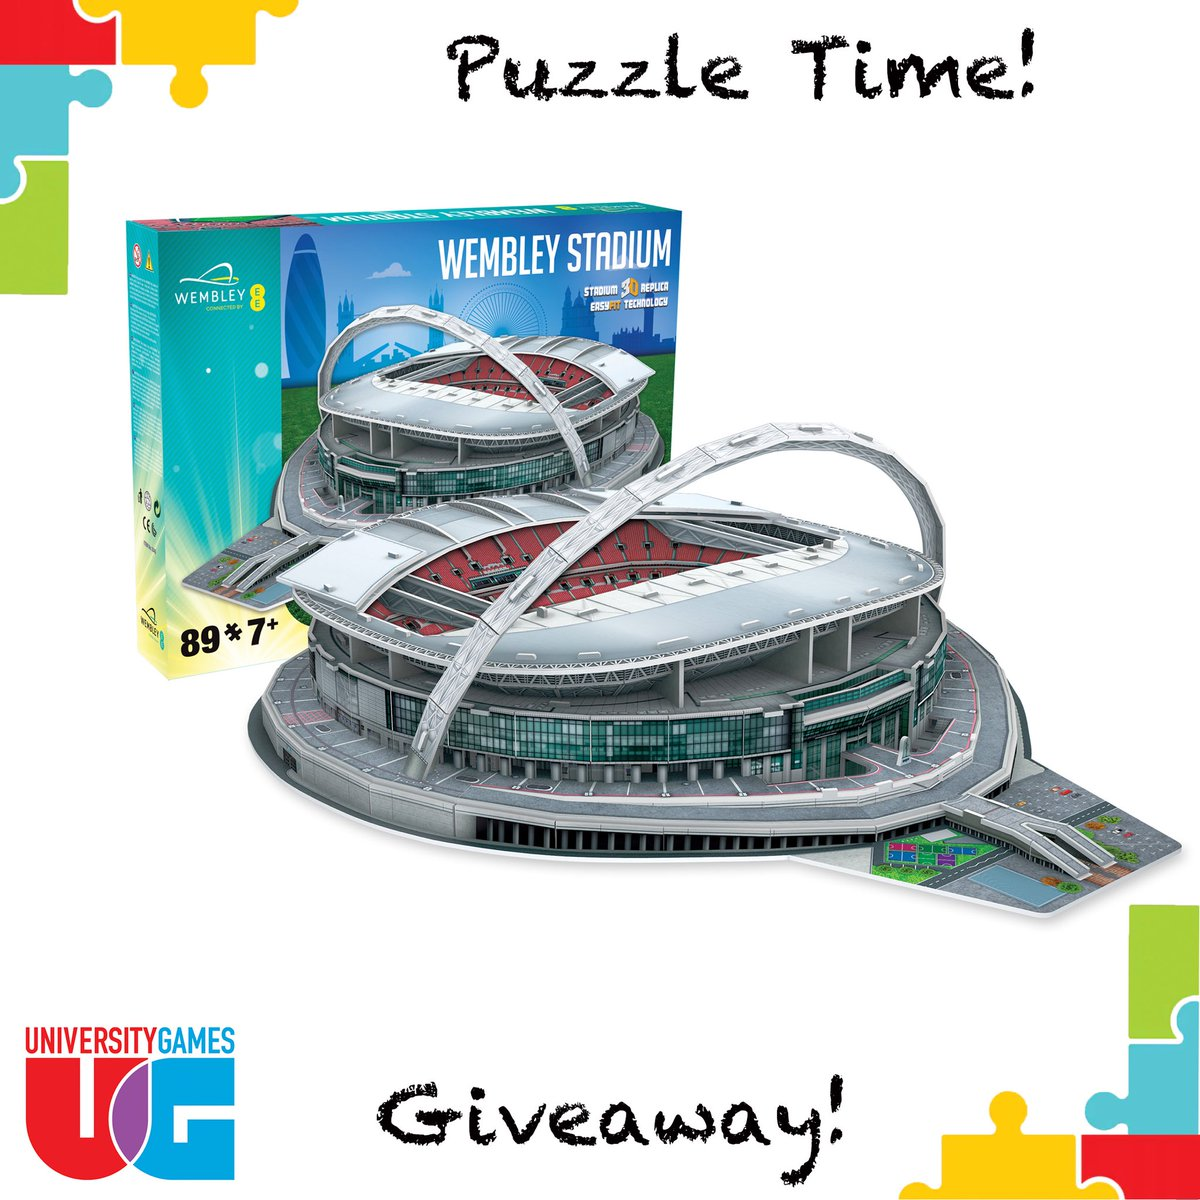 Last chance to enter our Wembley Stadium 3D Puzzle Giveaway! Perfect for football and puzzle fans and makes a great Fathers Day gift! To enter: #RT #Follow Comment #PuzzleGiveaway  Closes at 3pm on 1 June  2020. UK & ROI only. t&c's on FB and IG #giveaway #FathersDayGiftspic.twitter.com/SkhXZstrrU